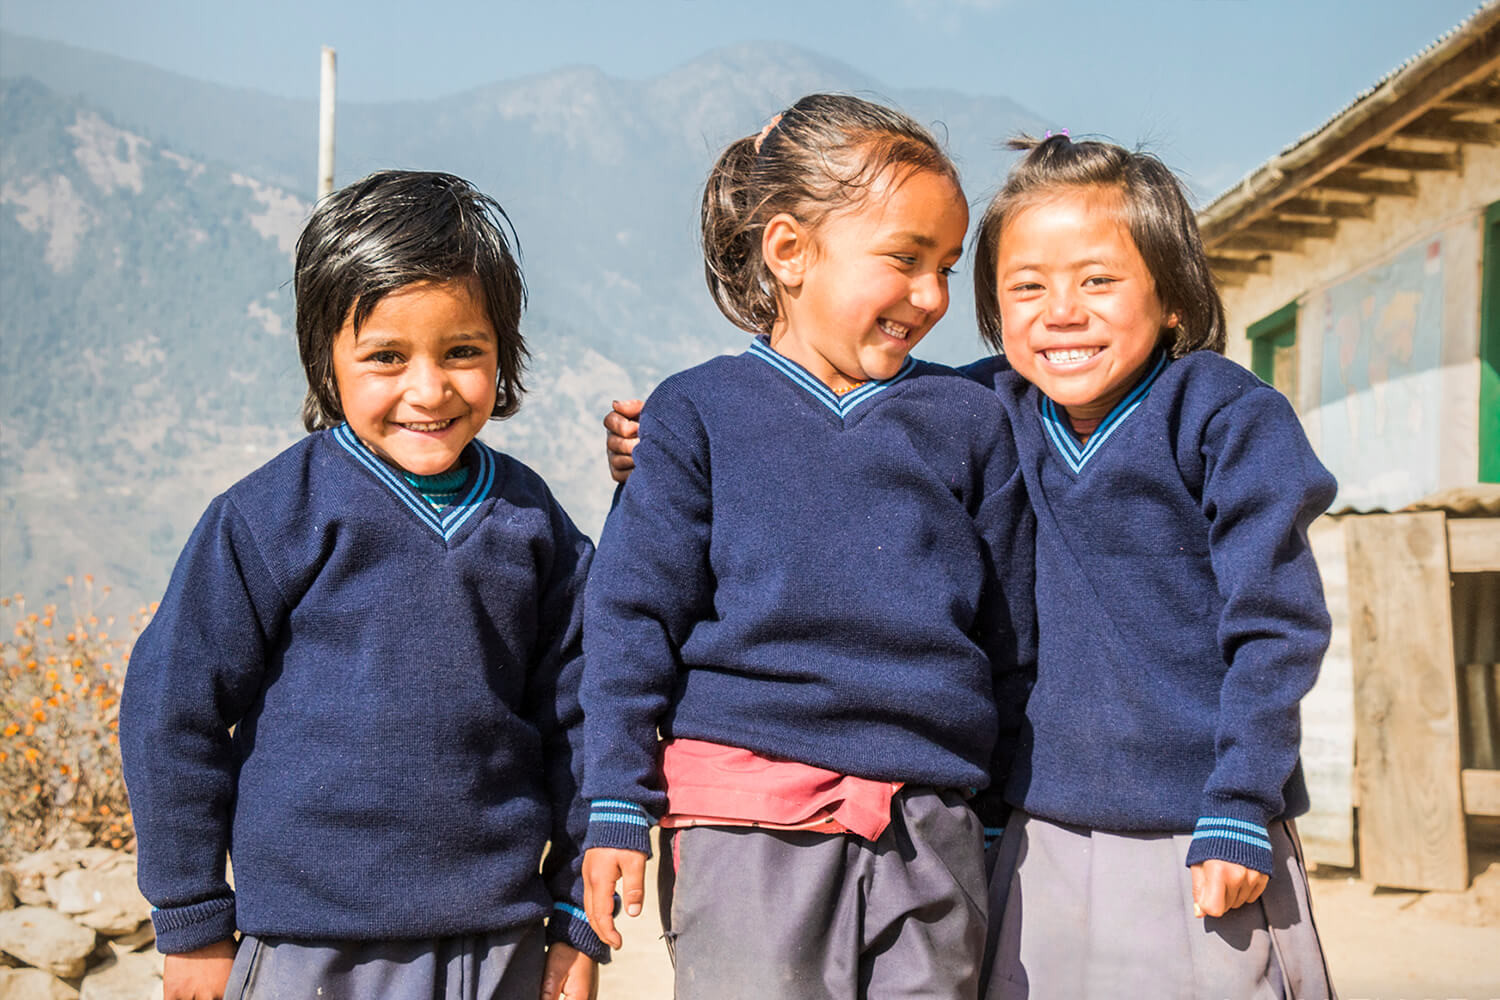 Nepali children happy with their new pull overs